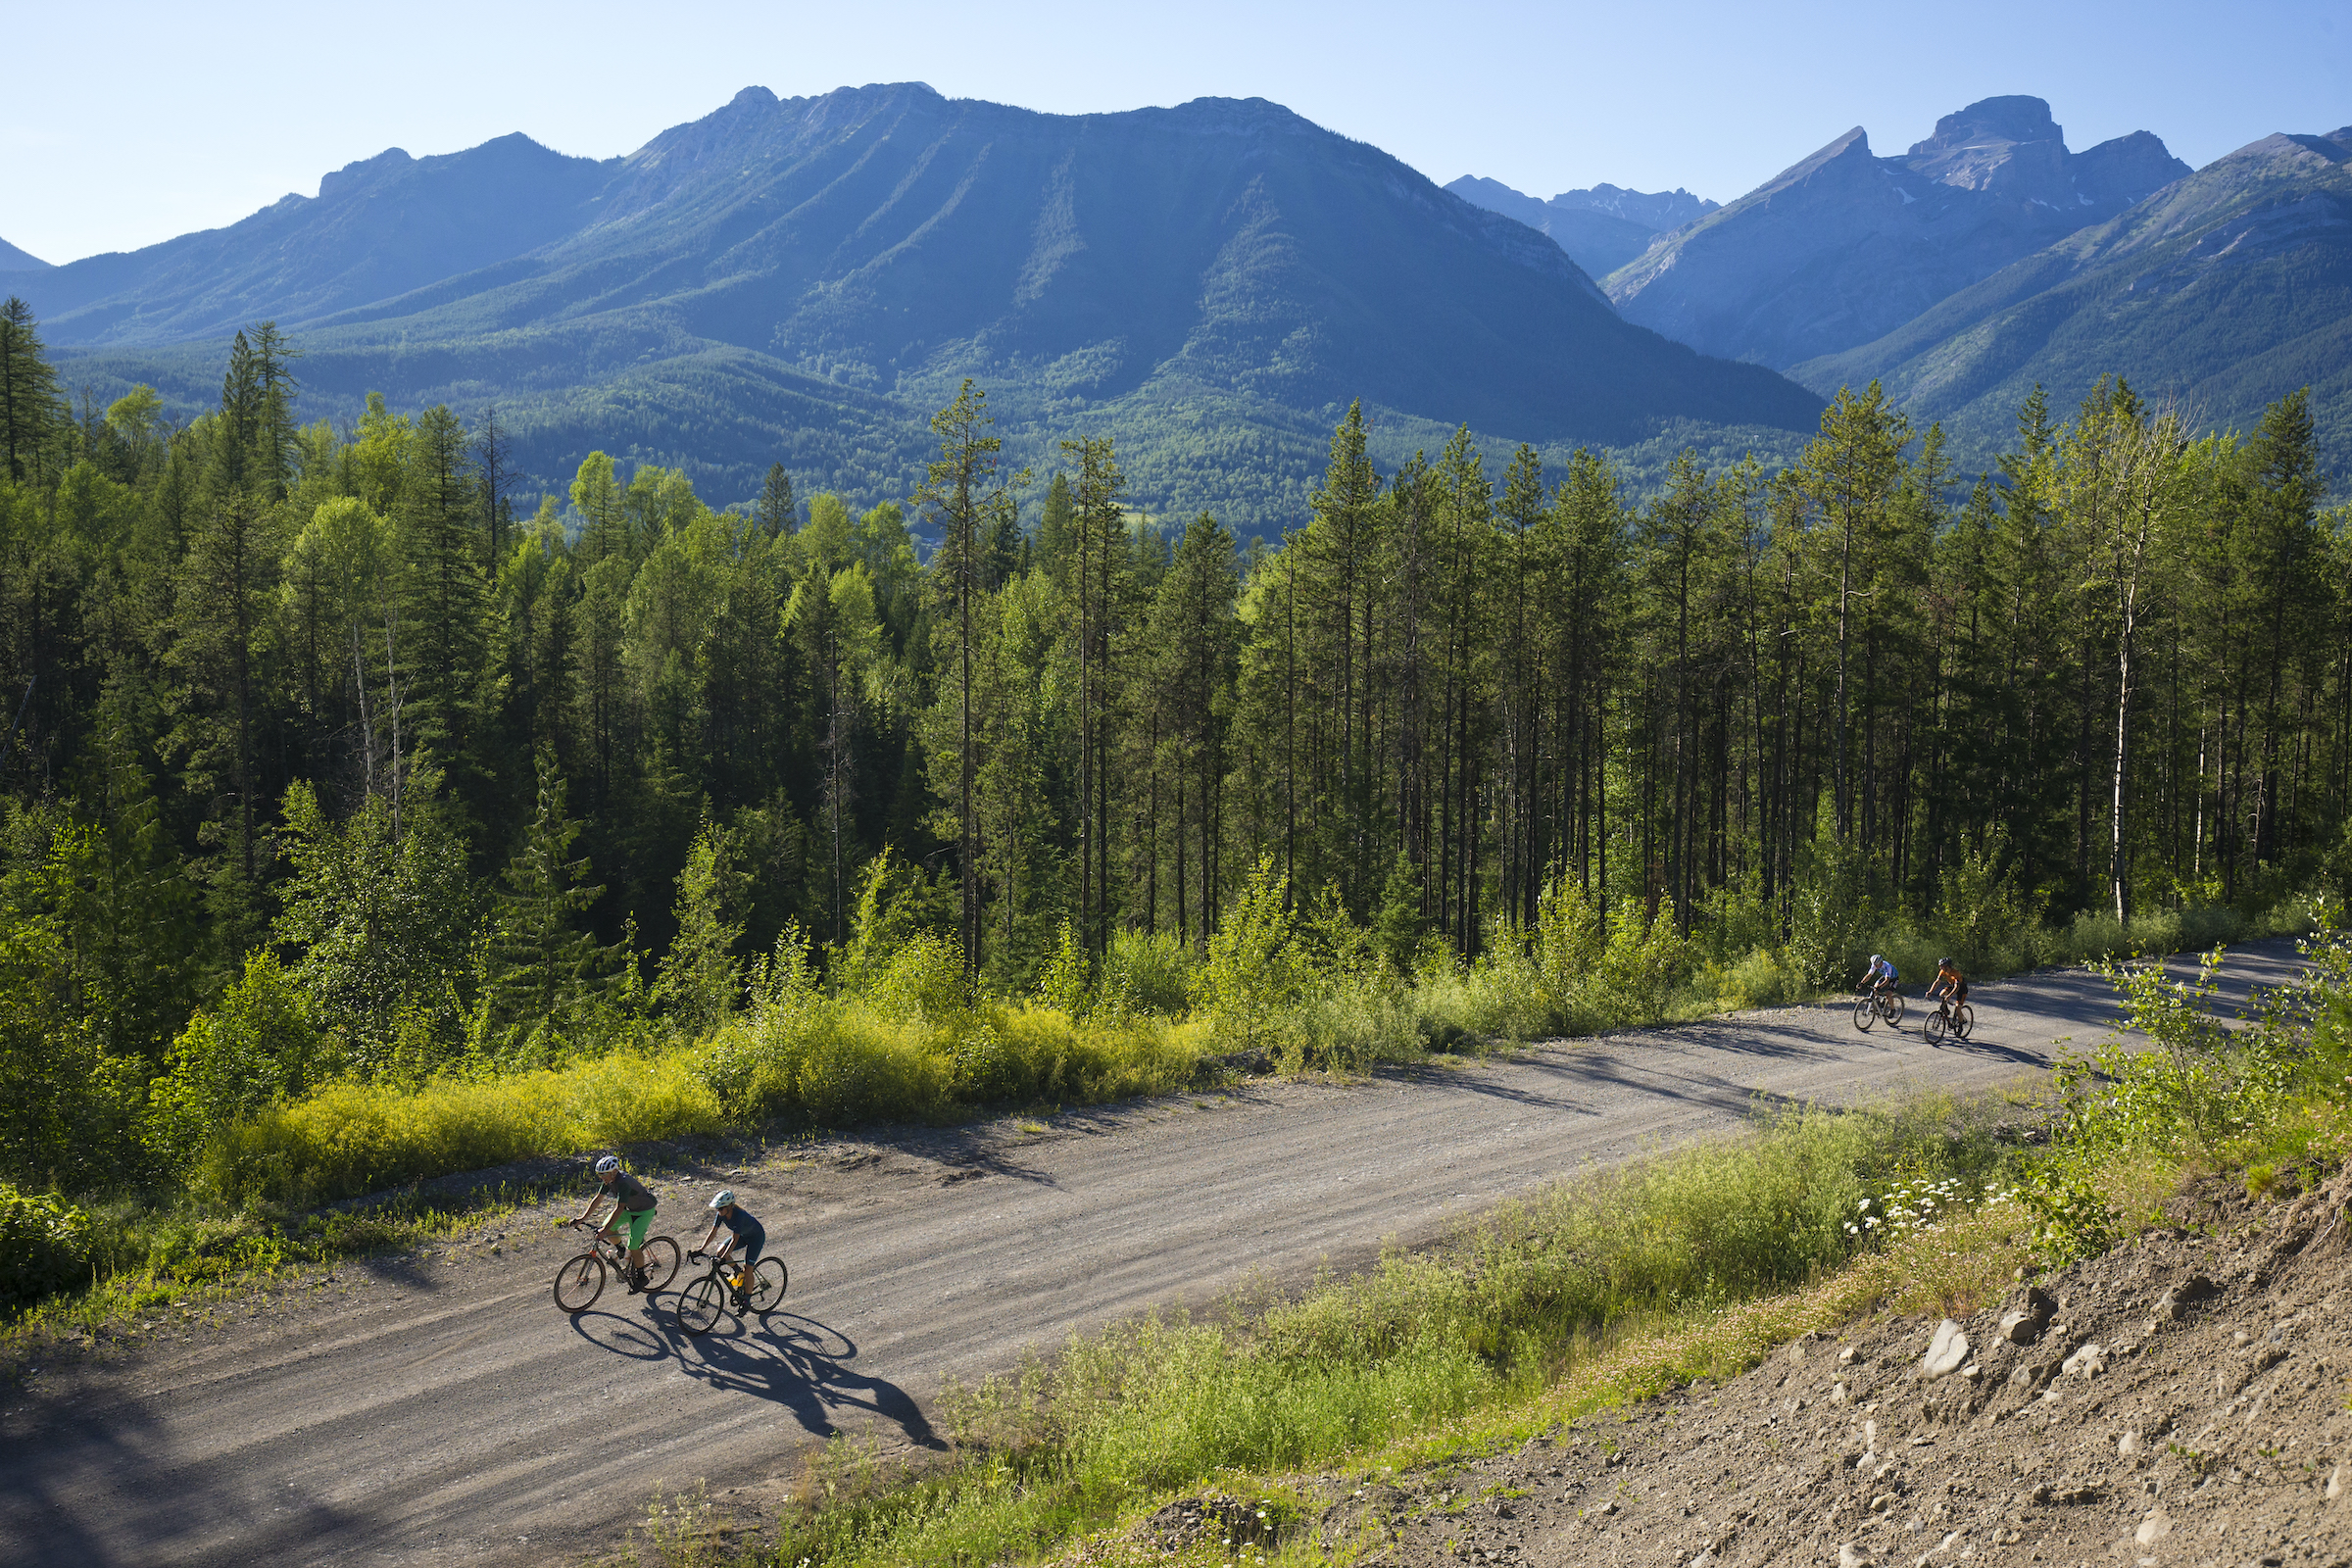 gravel riding in Fernie, B.C., Canada